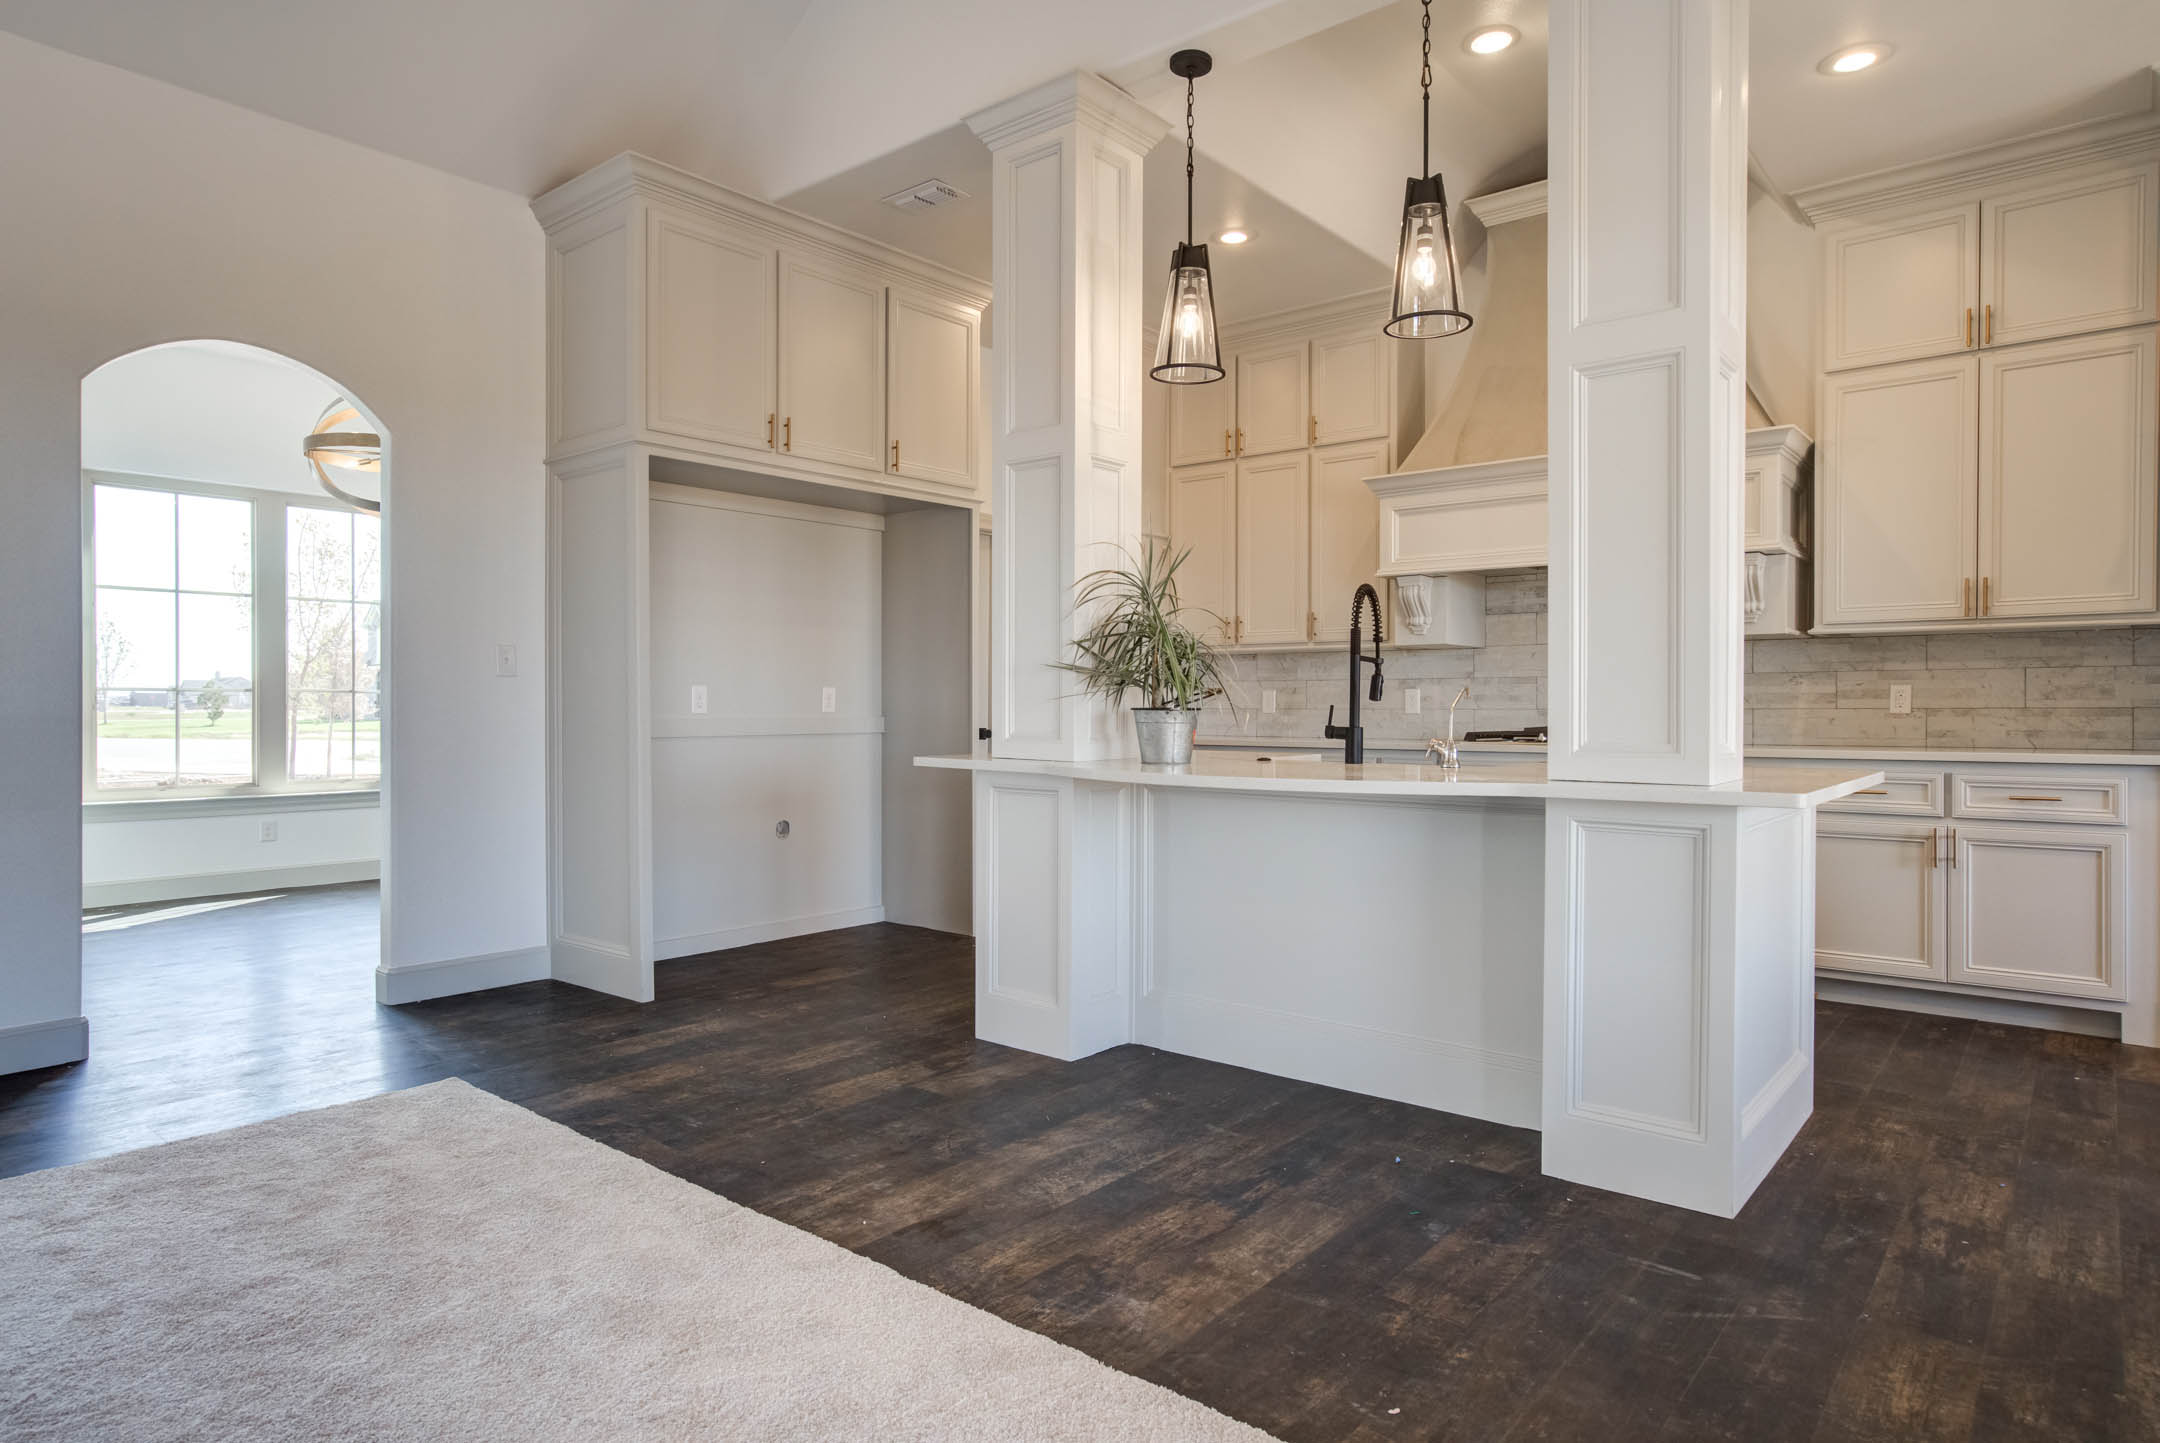 Beautiful, modern kitchen in new home for sale near Lubbock, Texas.